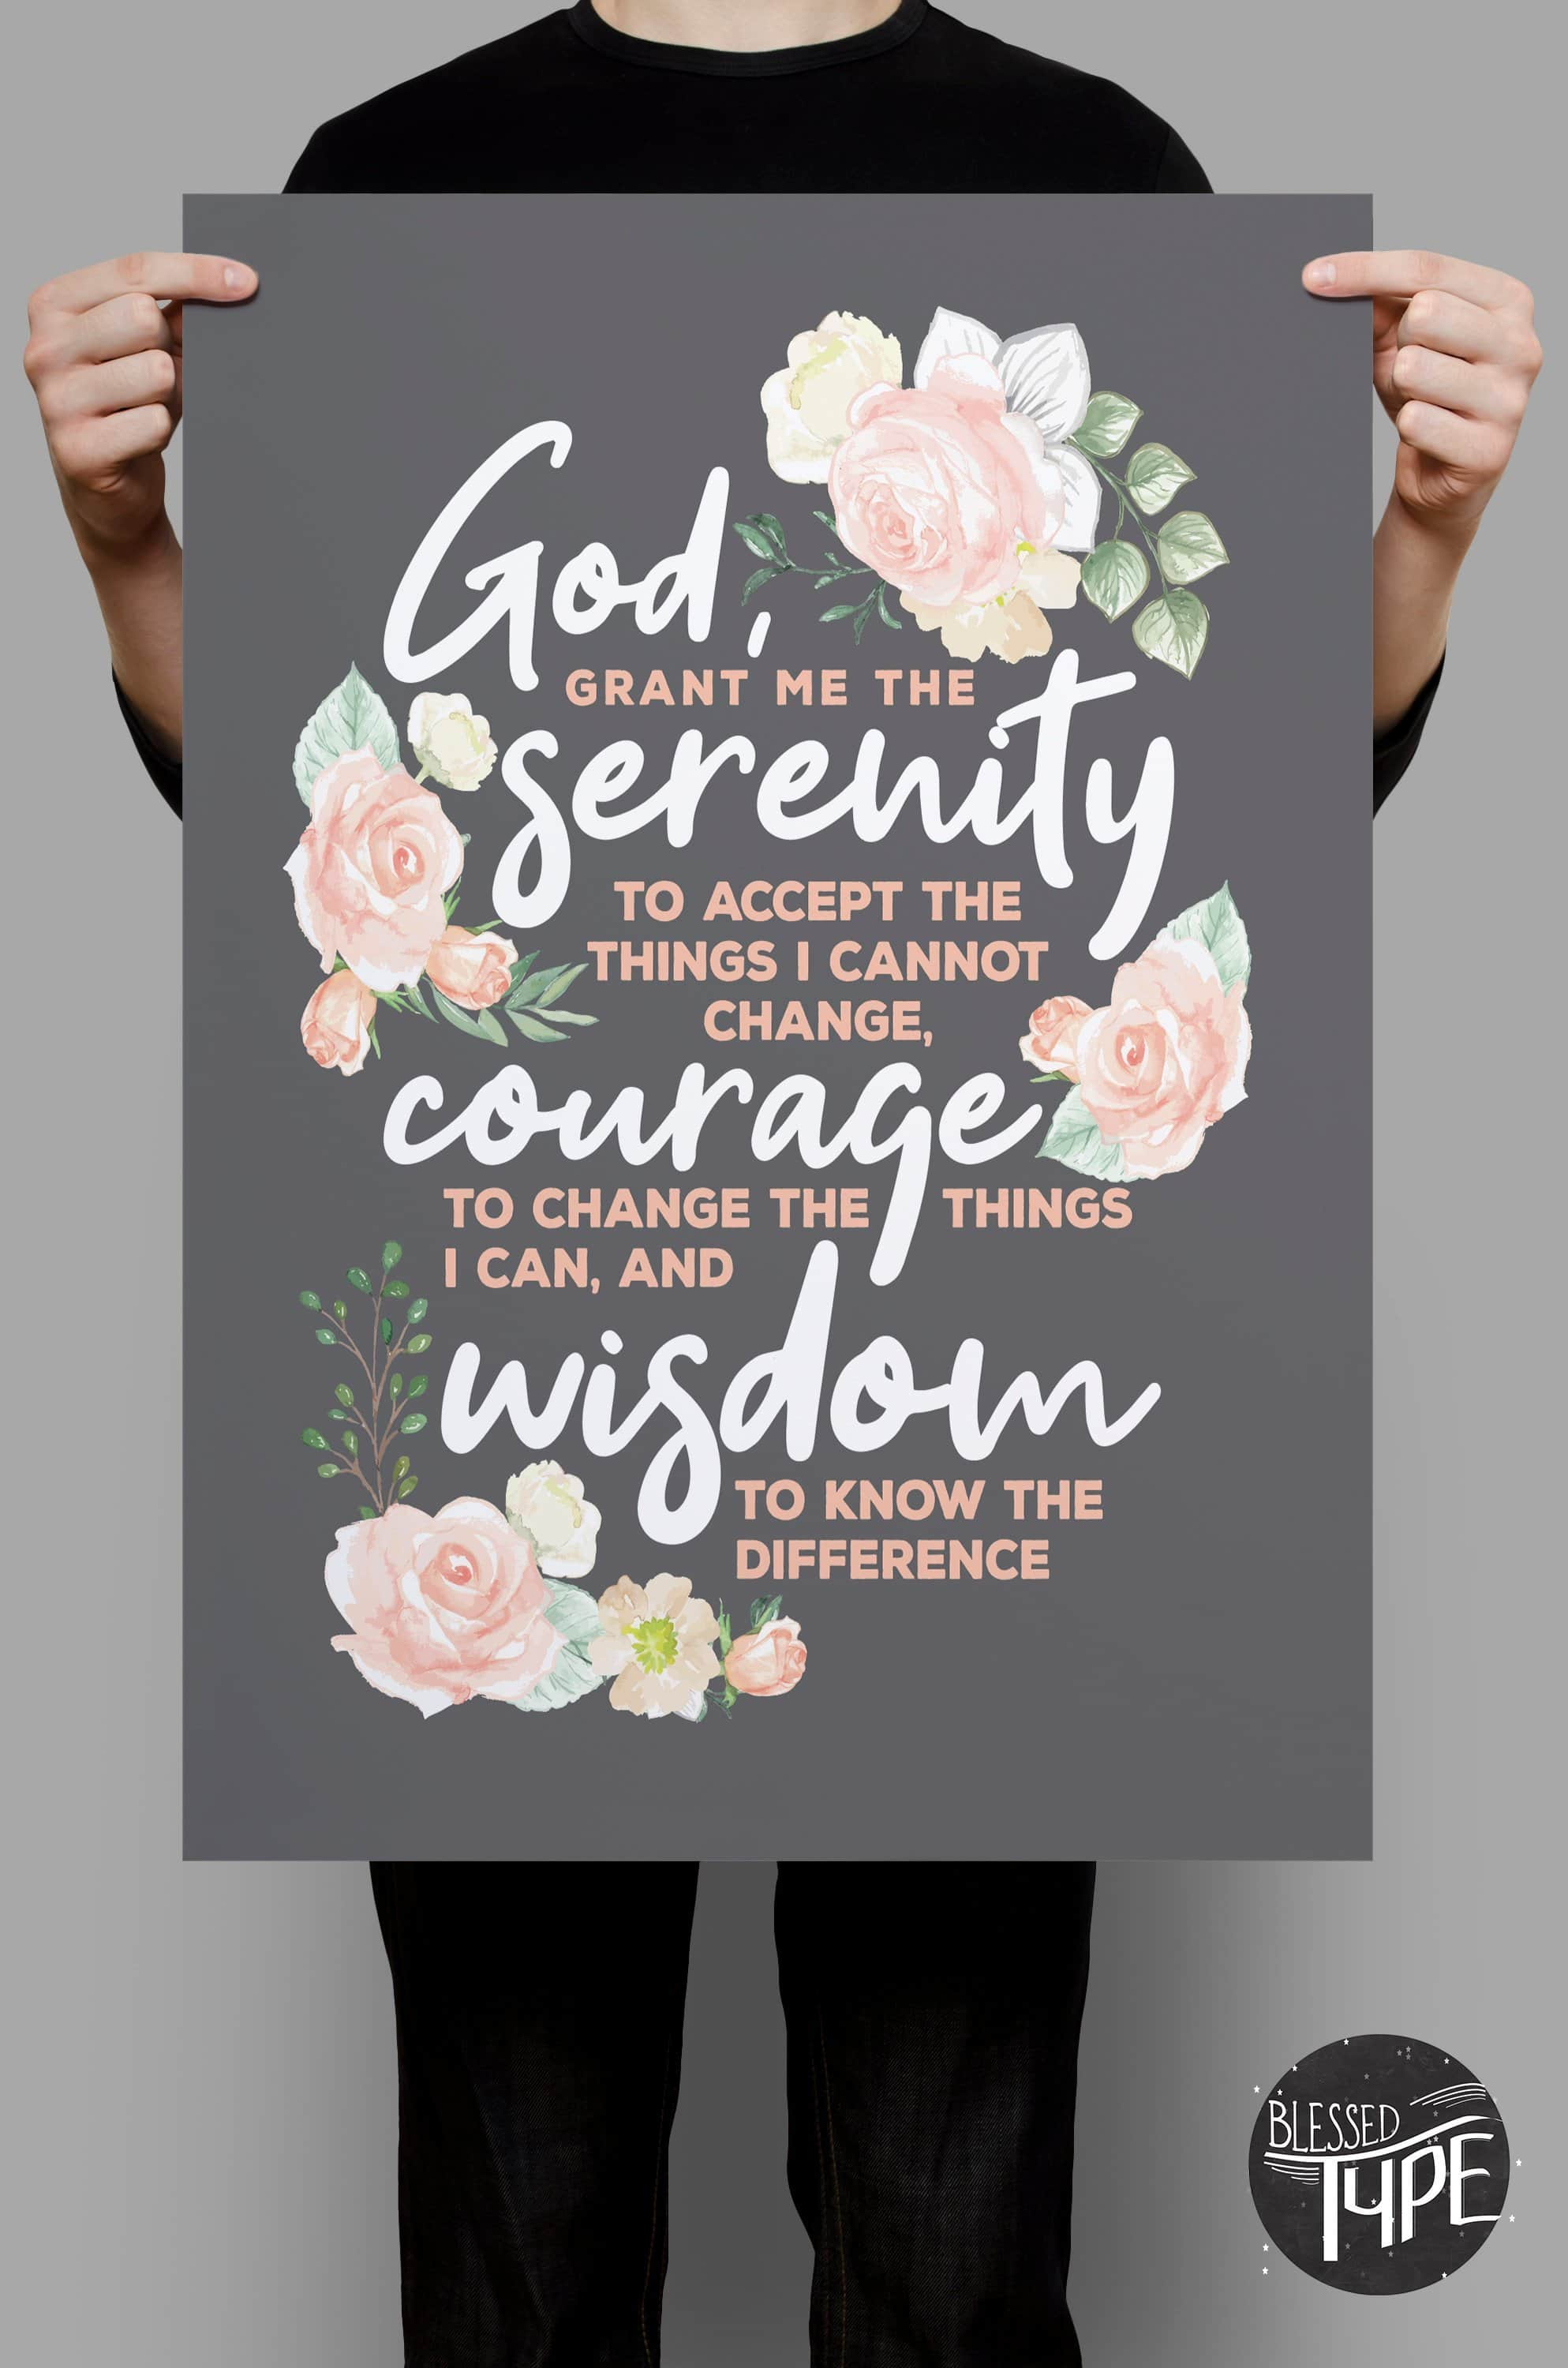 Serenity Prayer Print, Serenity Prayer Poster, Serenity Prints, Serenity Prayer Wall Art, Serenity Prayer Gifts, Gifts for Strength